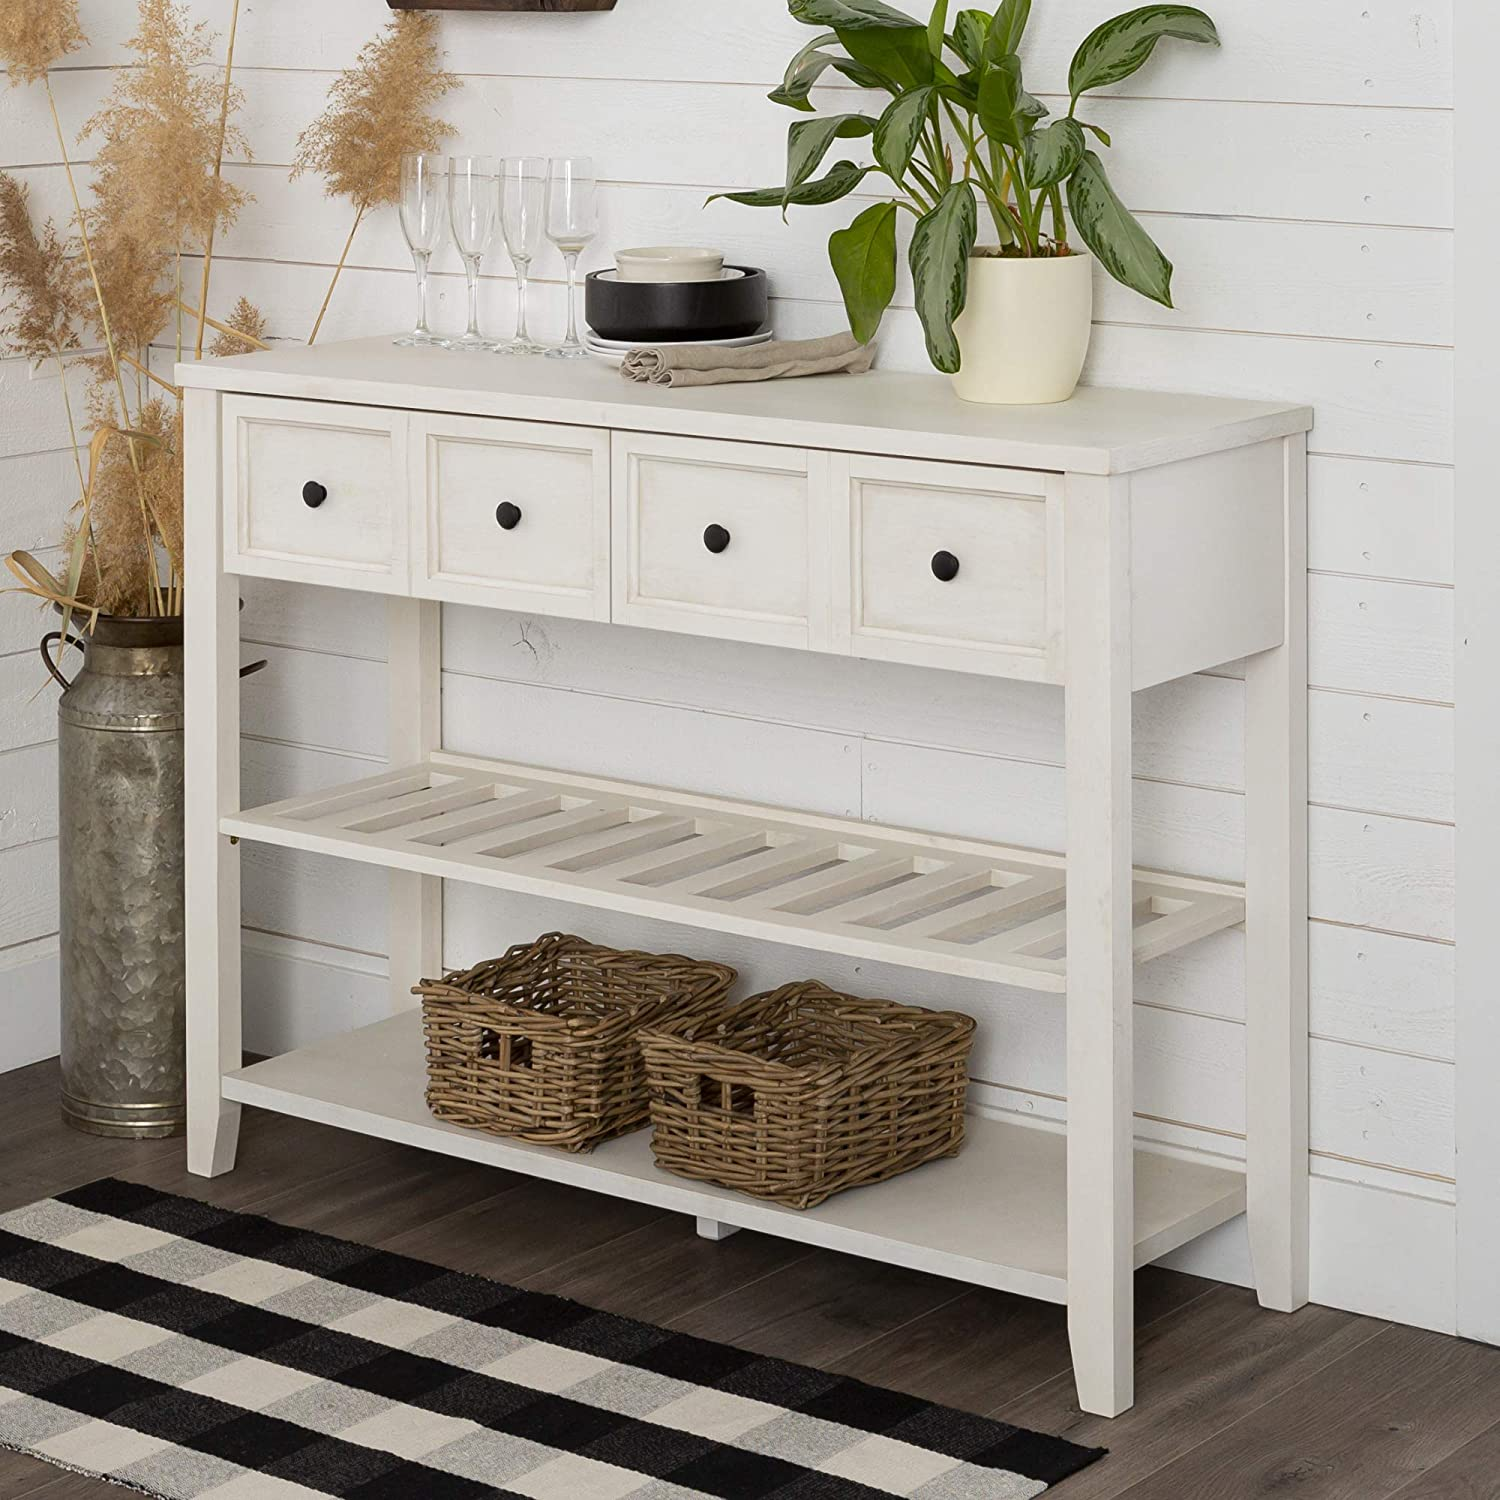 Walker Edison Modern Farmhouse Wood Buffet Sideboard Entryway Serving Storage Cabinet Doors Dining Room Console, 48 Inch, White